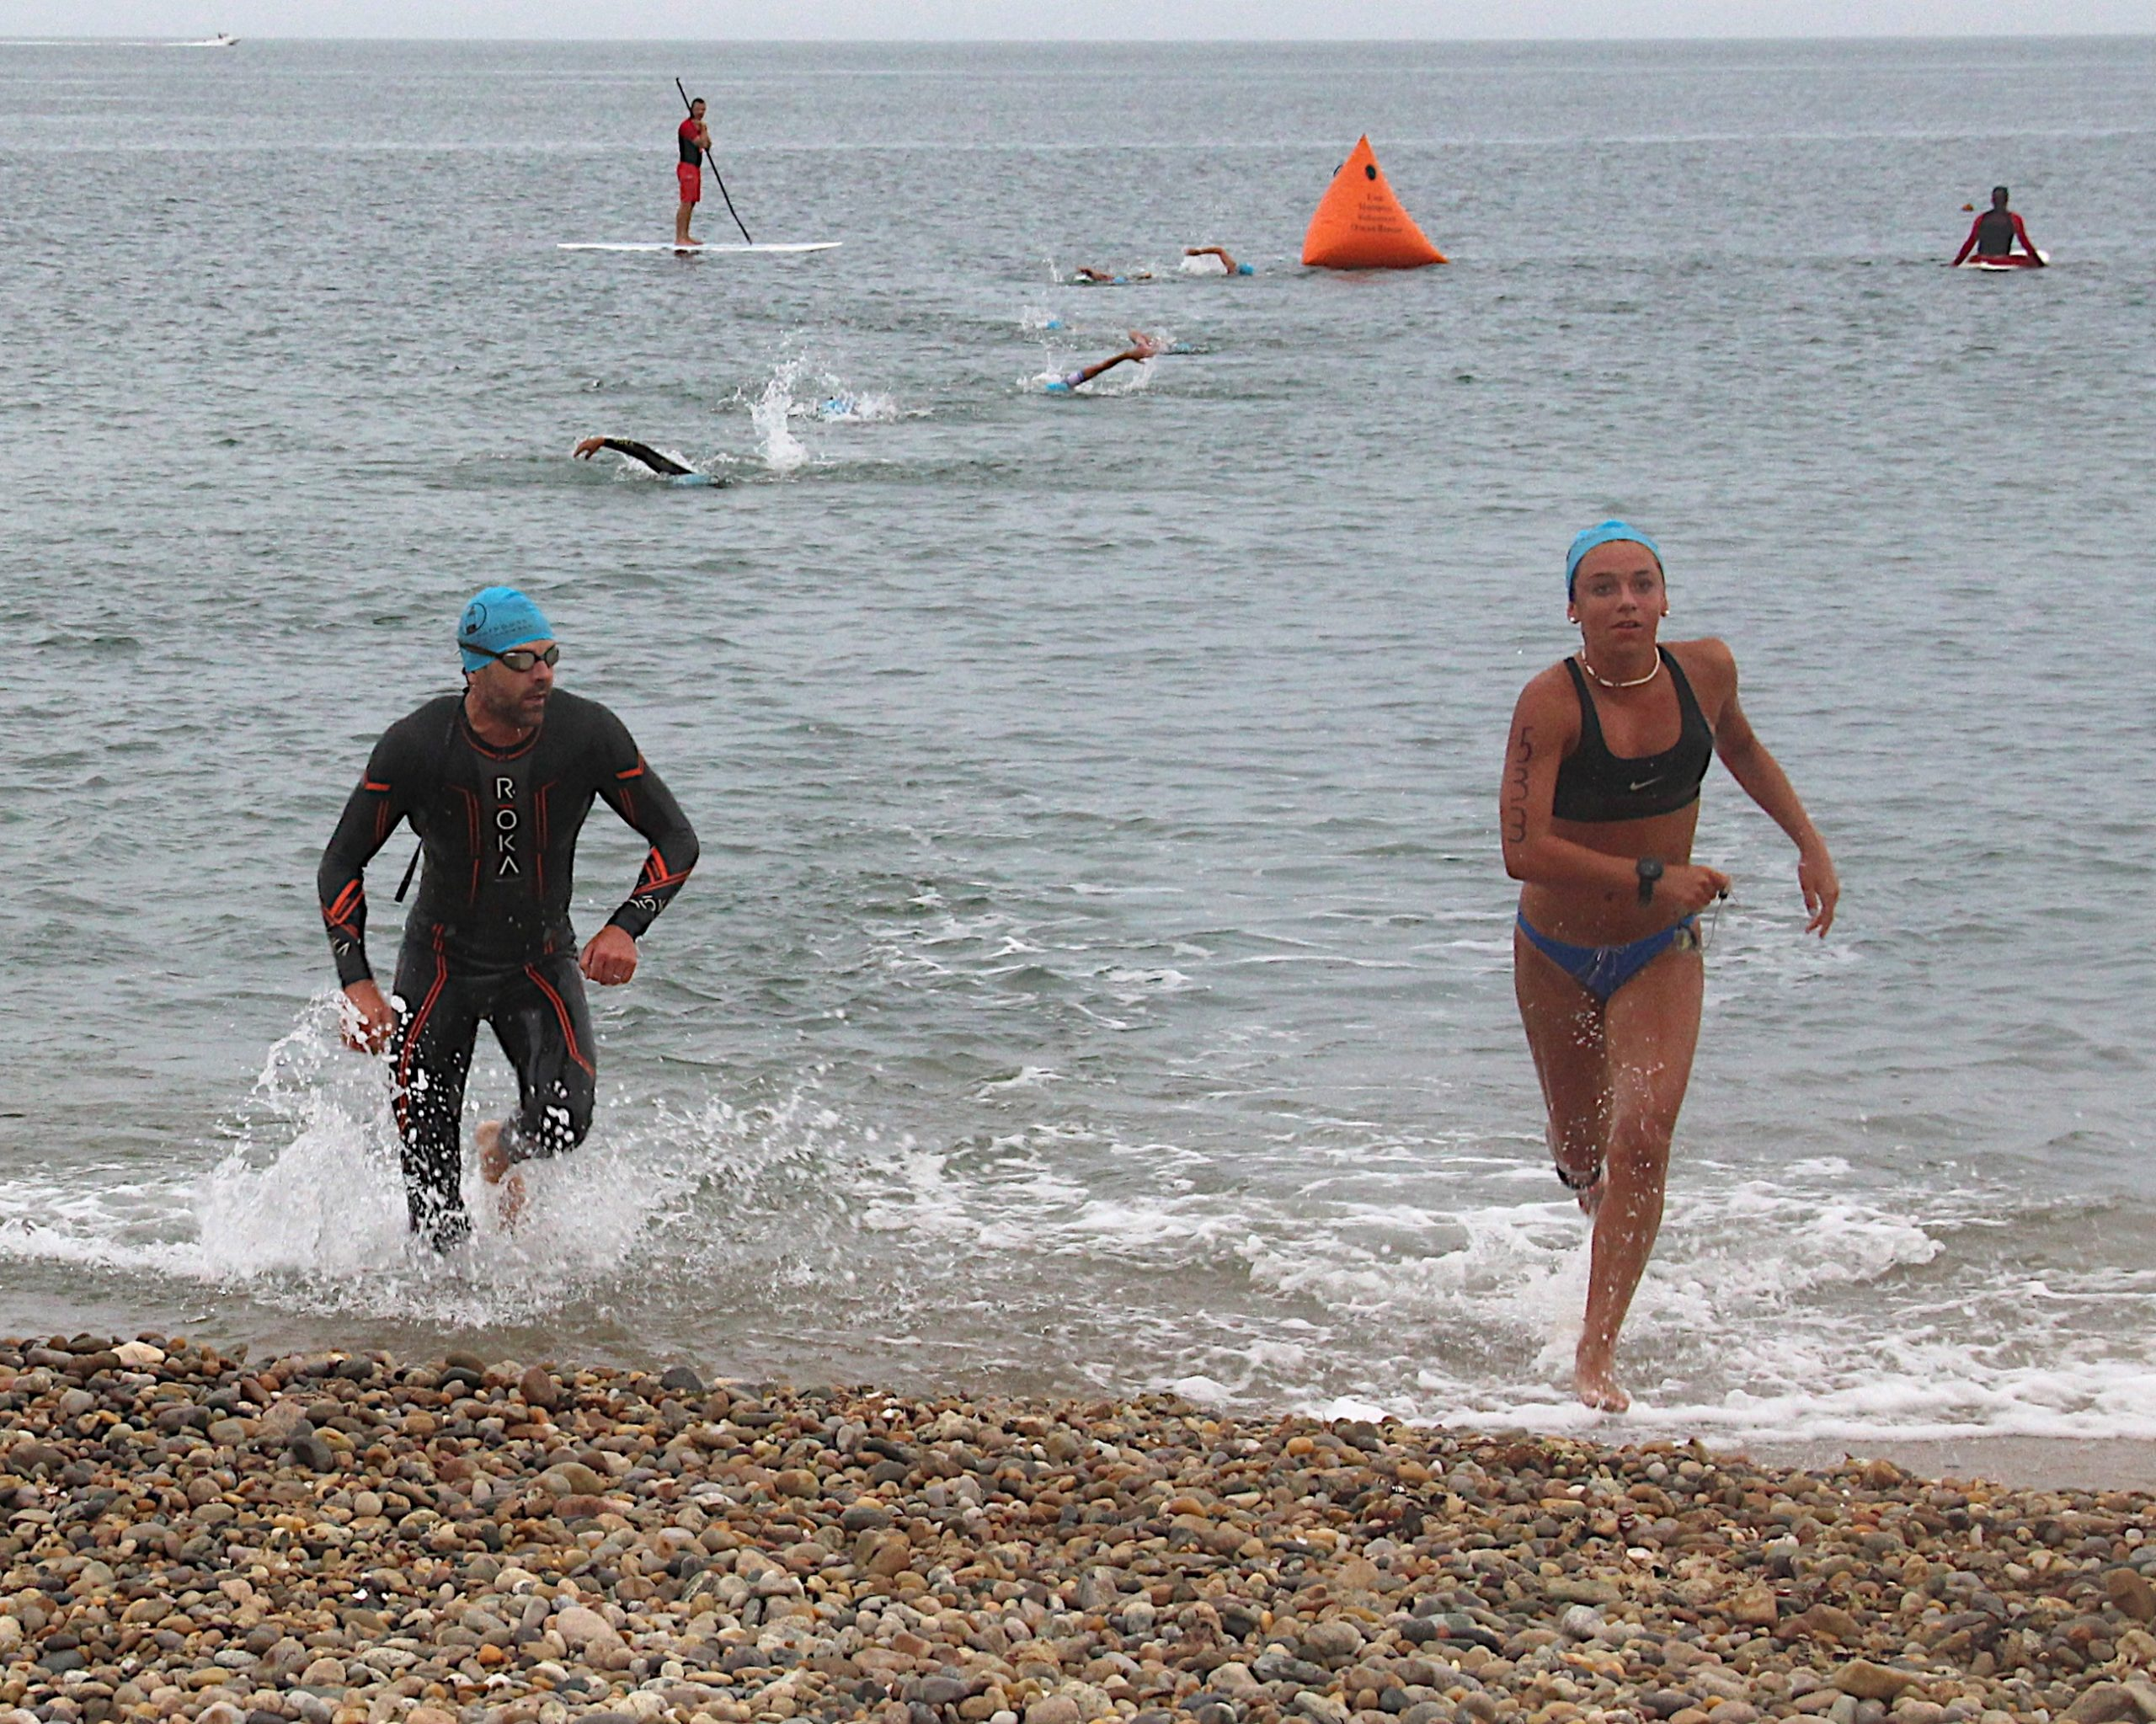 After completing the swimming portion of the triathlon, athletes get out of the water and head toward their bikes to start the cycling portion.